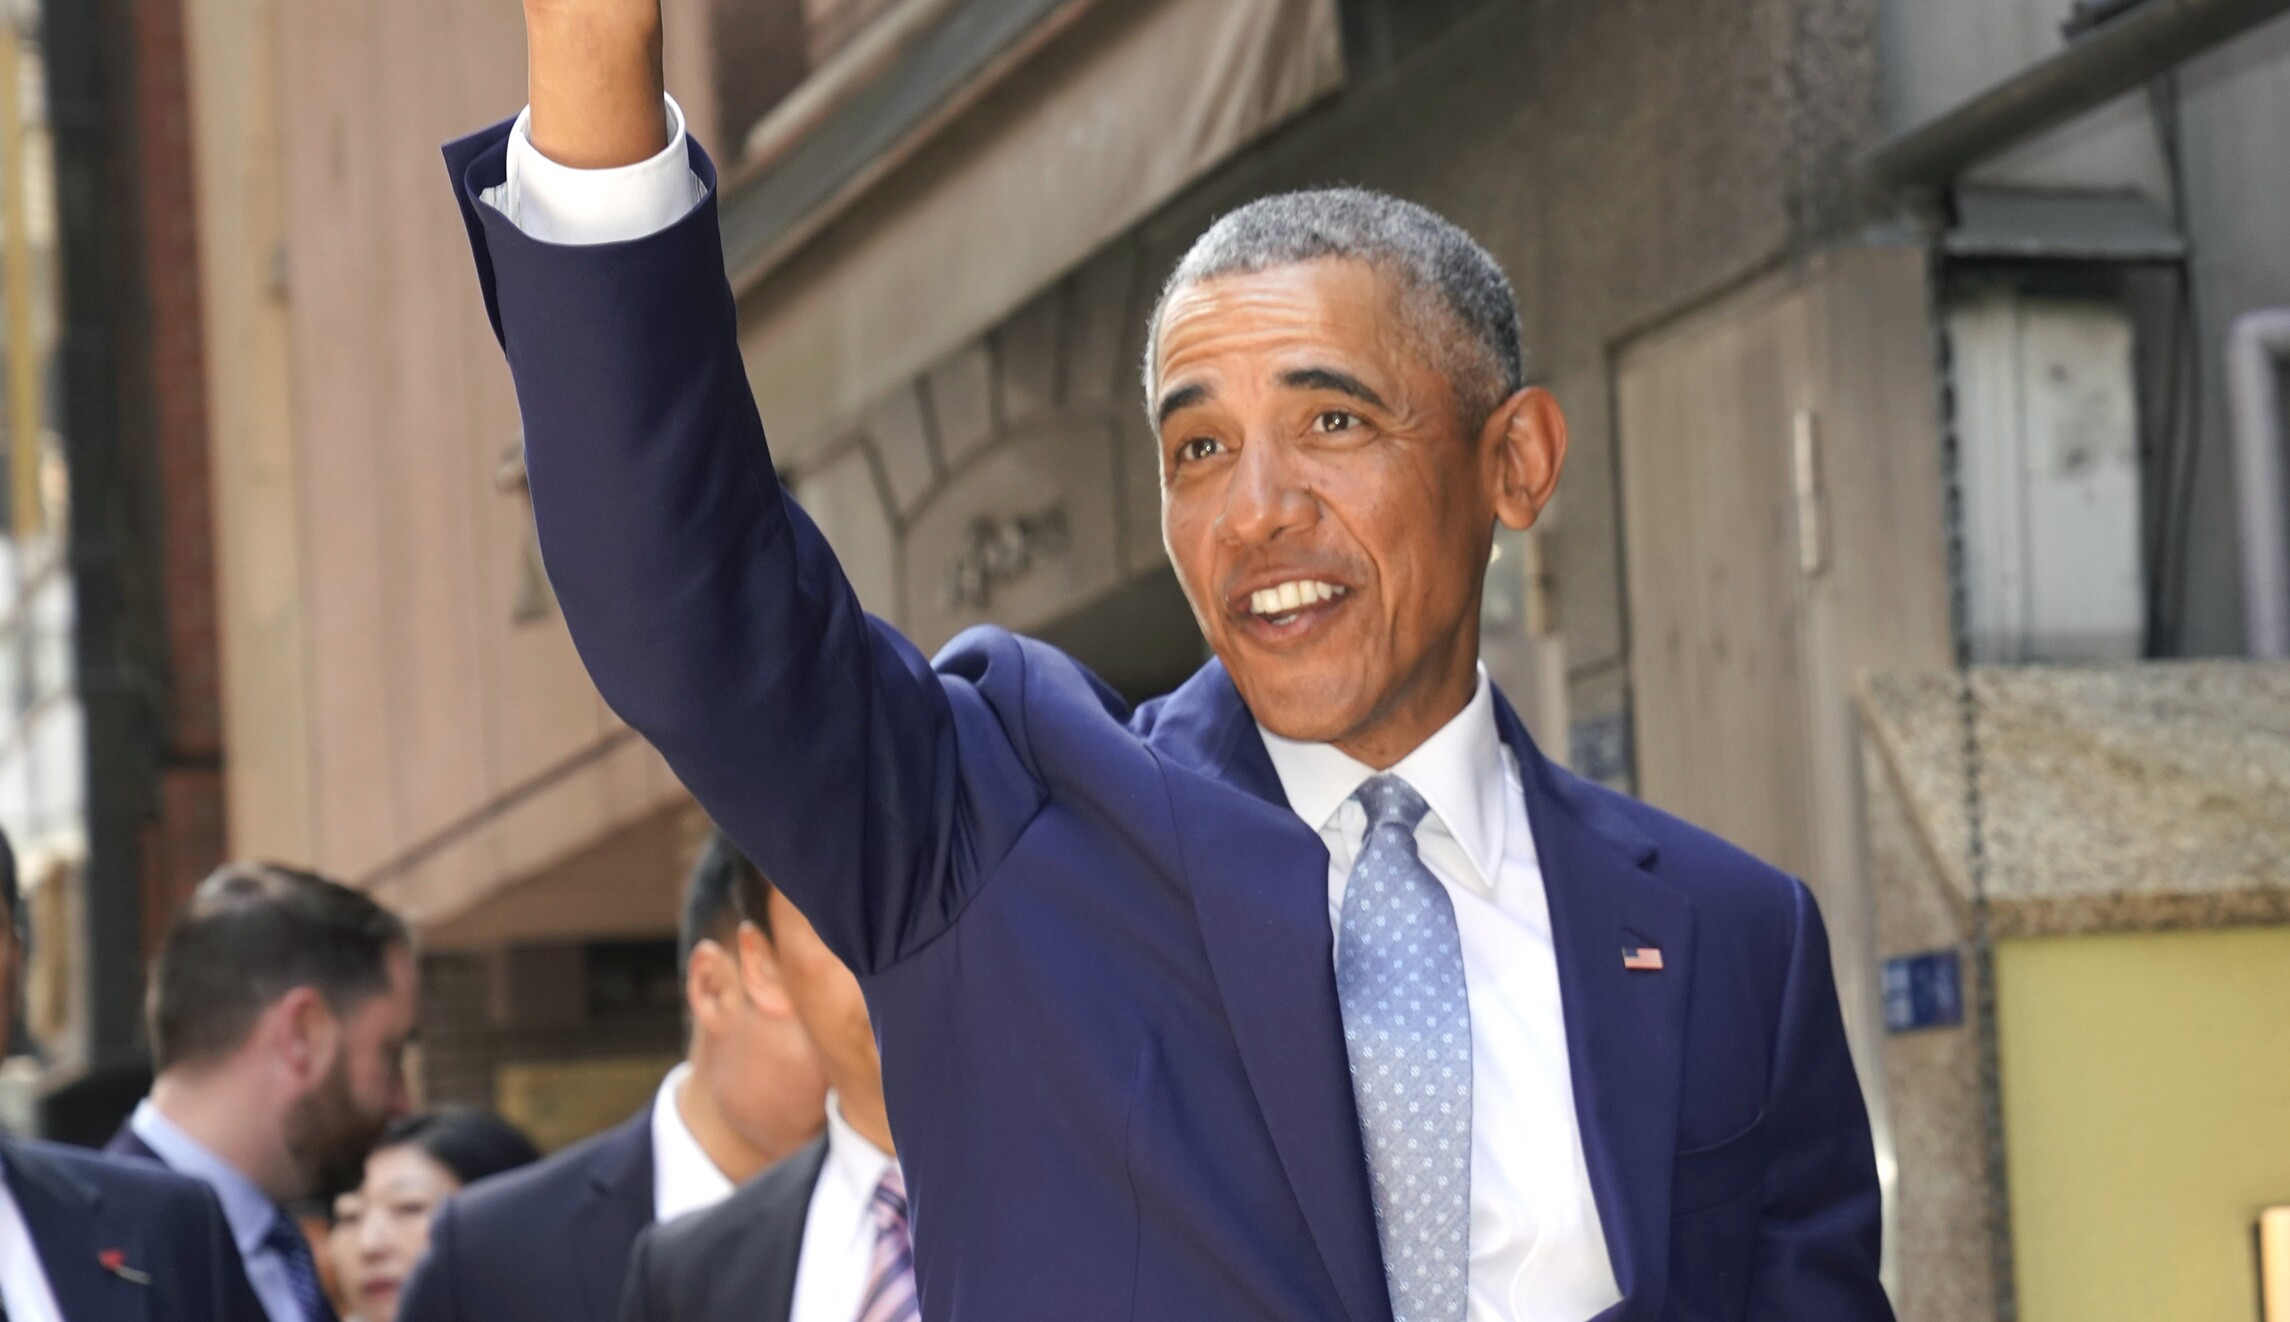 Obama visits Kenya for first time since leaving office (washingtonexaminer.com)